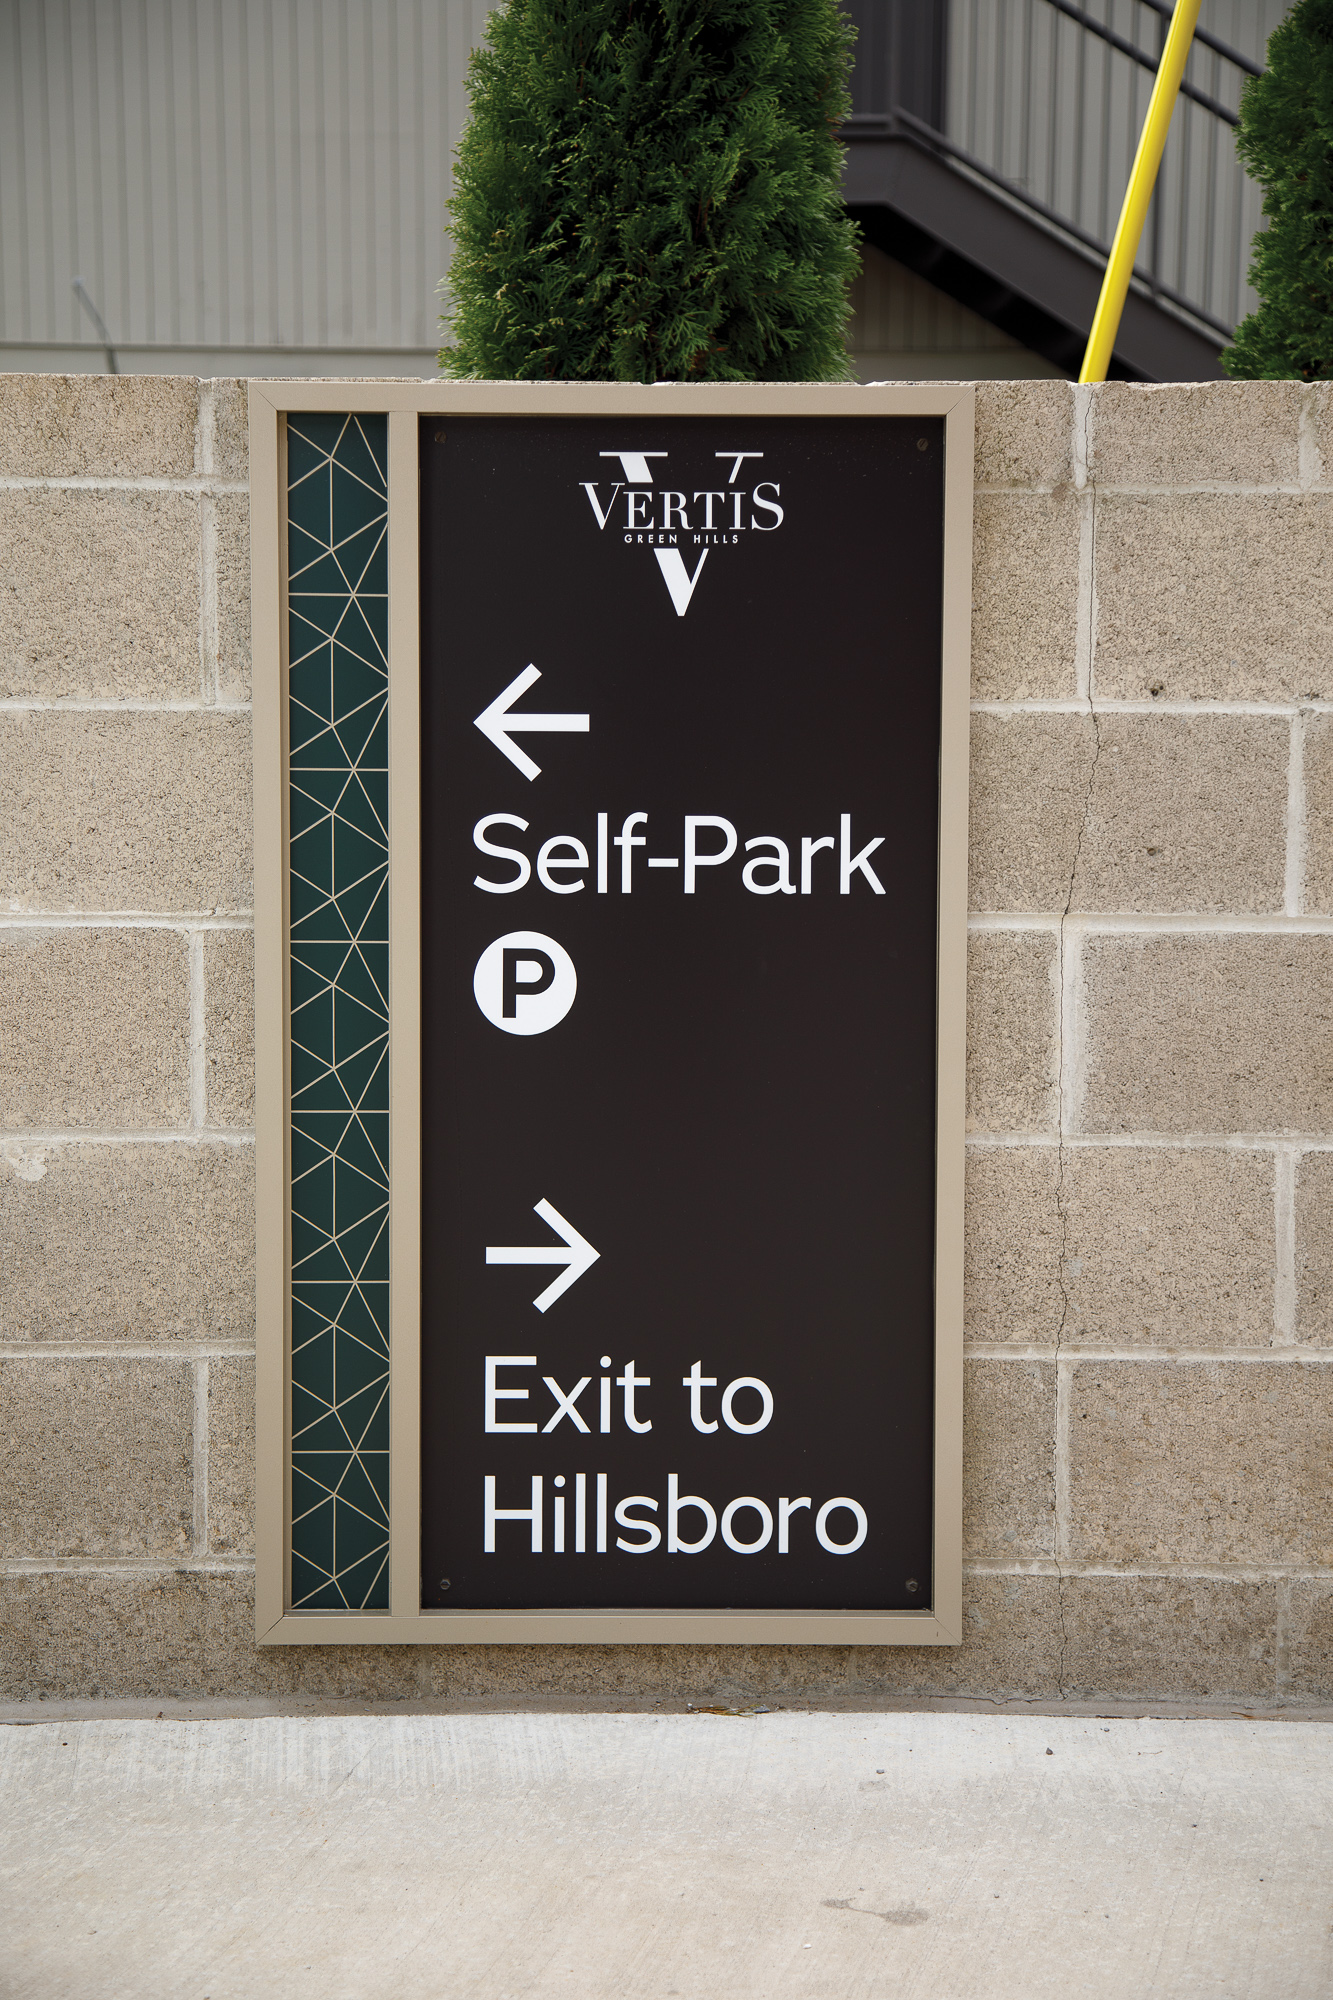 Vertis-Green-Hills_wayfinding-signage_self-park-exit__MG_5886_small 2000 px.jpg